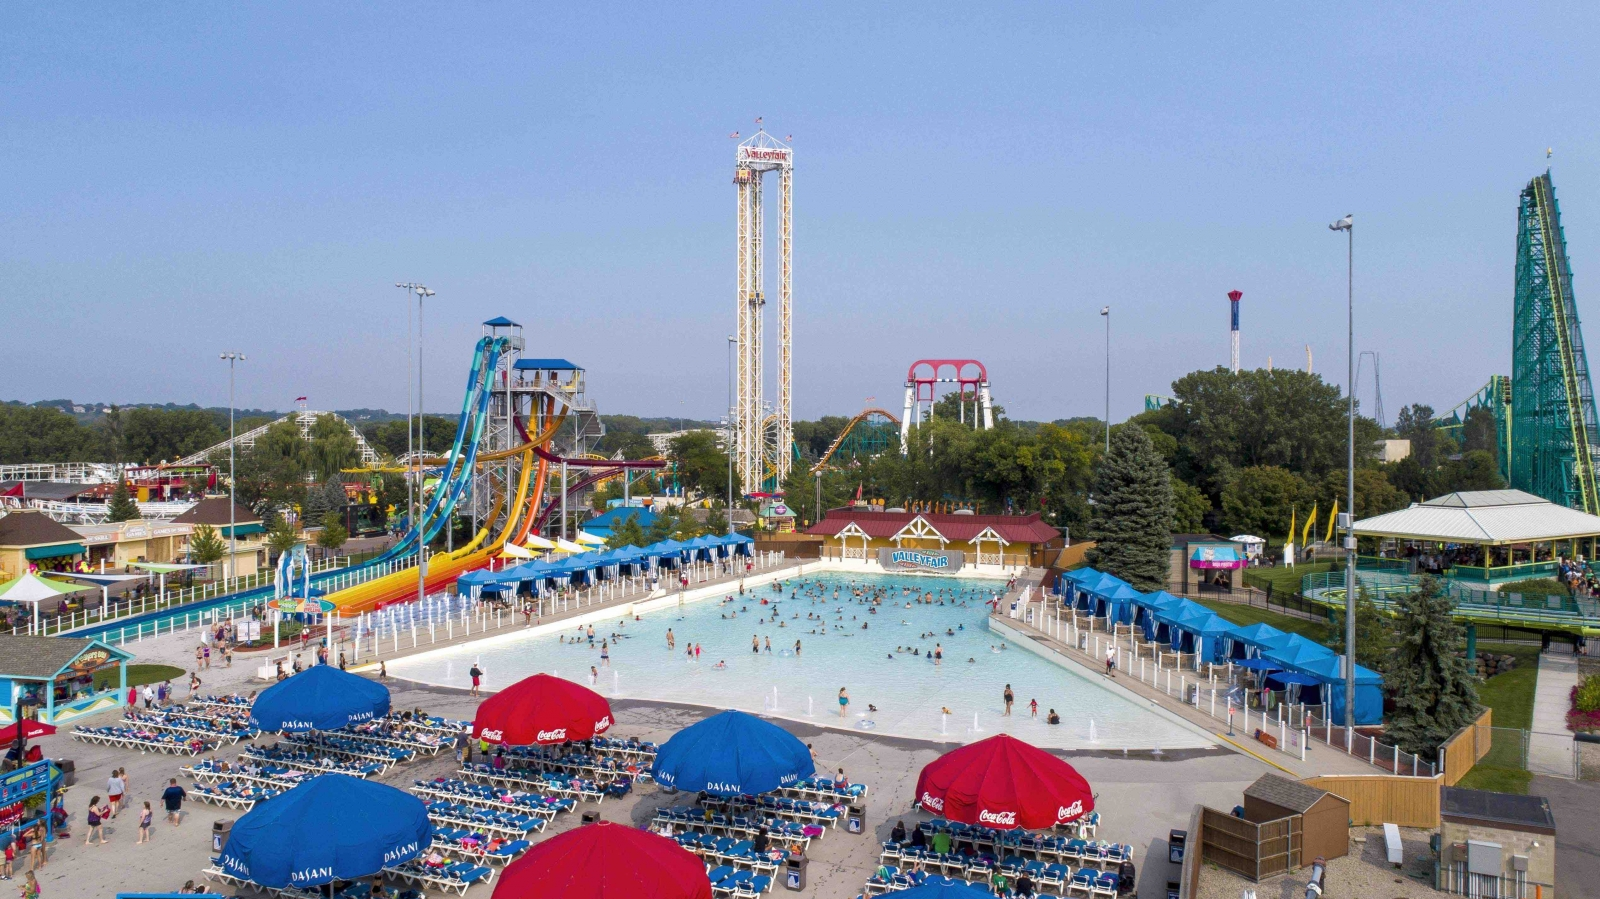 The six-foot wave pool at Valleyfair's Soak City is always populated in the summer. Courtesy Valleyfair.